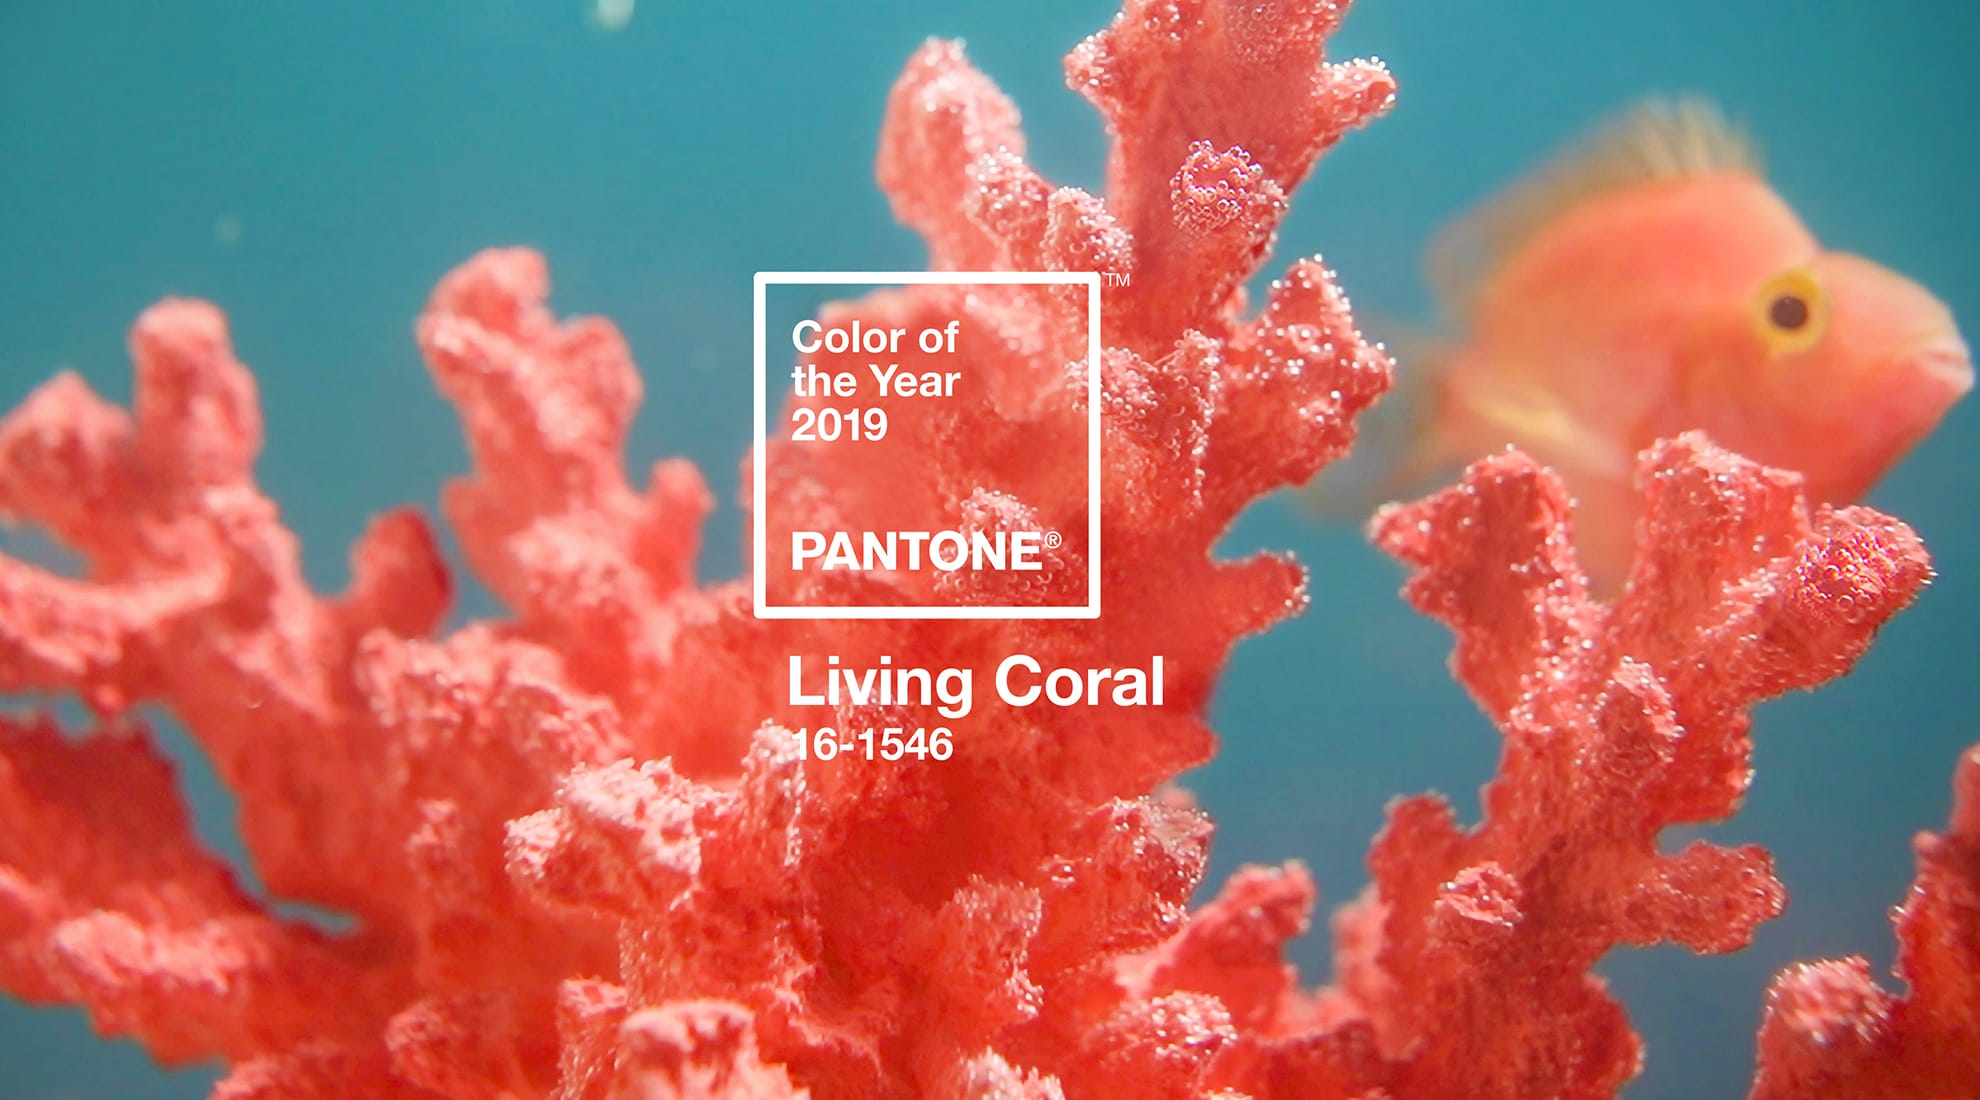 2019 Color of the Year: Living Coral